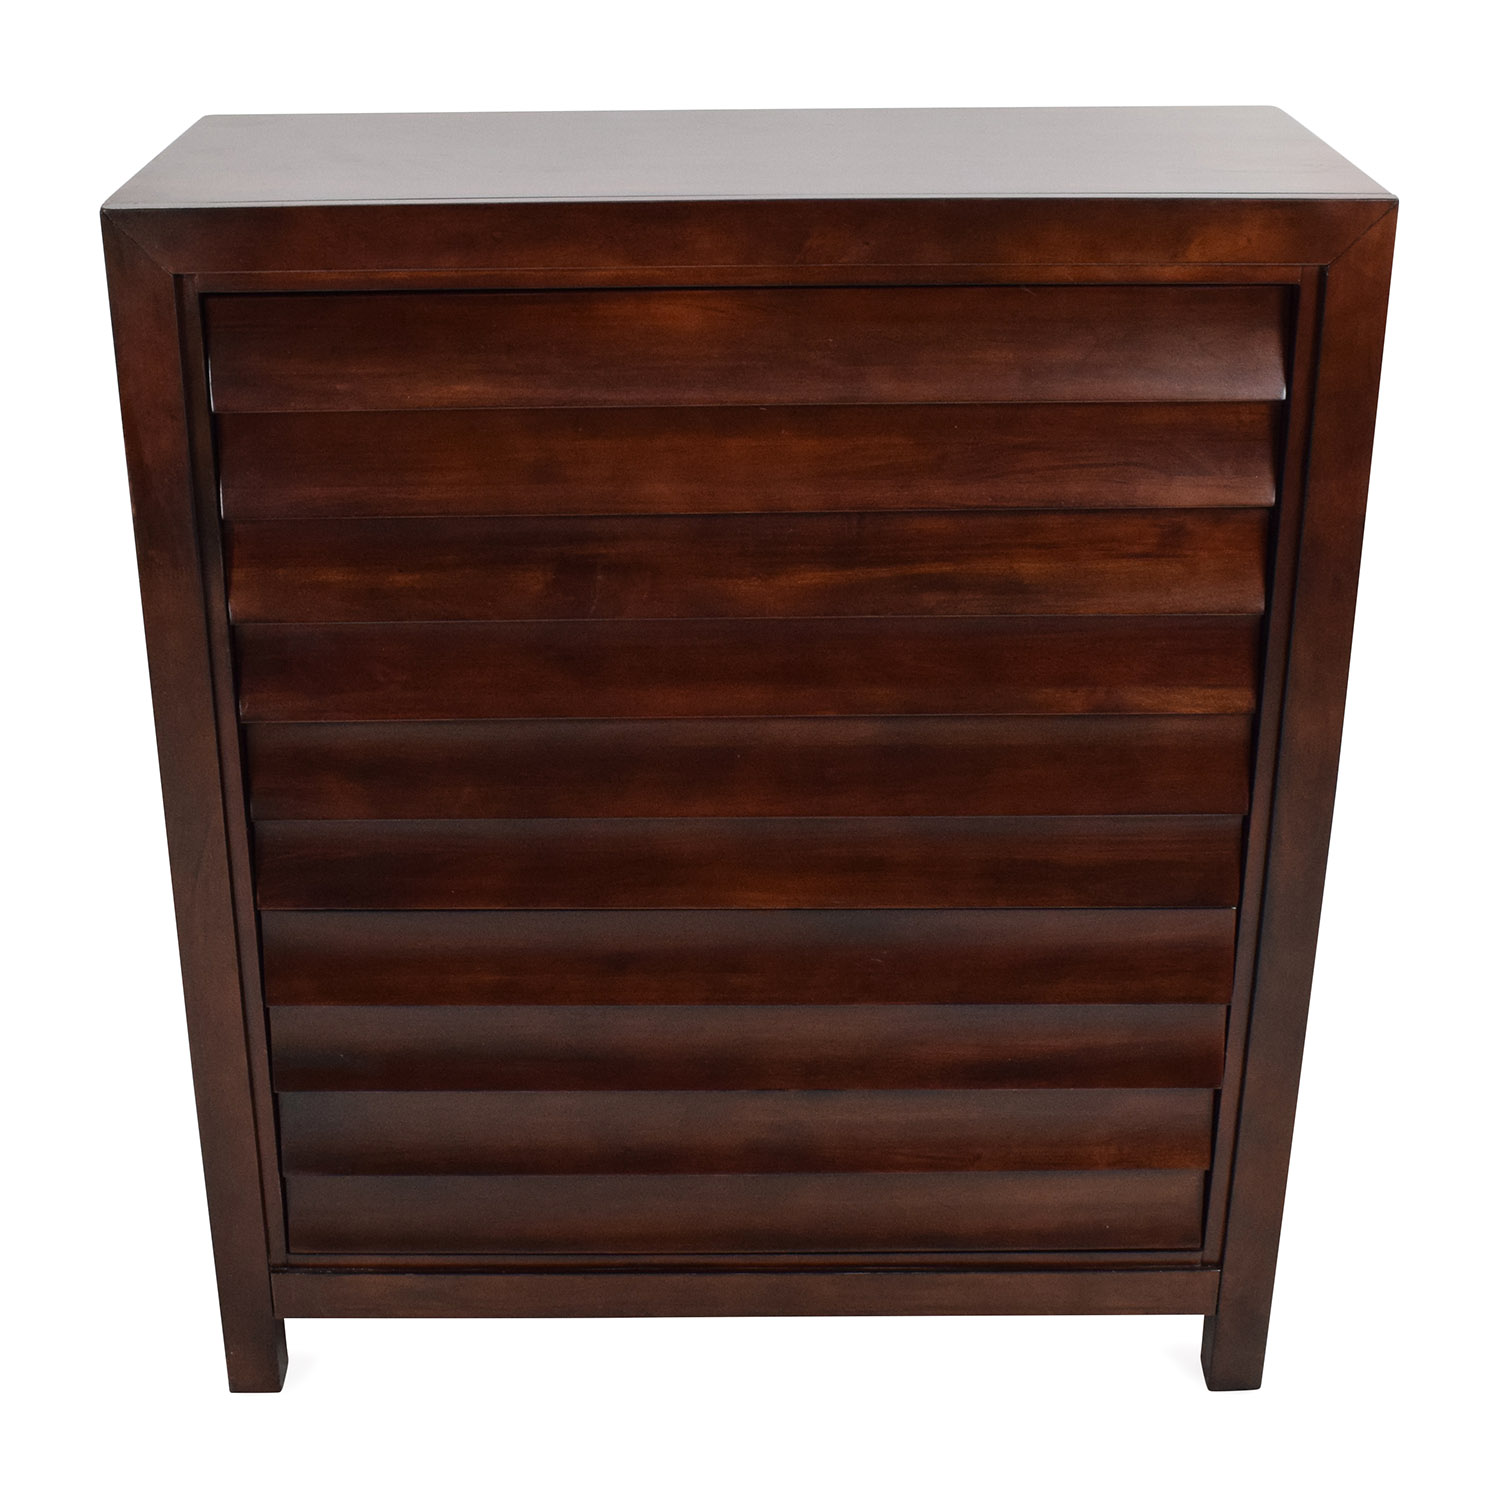 61 OFF Bobs Furniture Bobs Furniture EightDrawer Dresser and